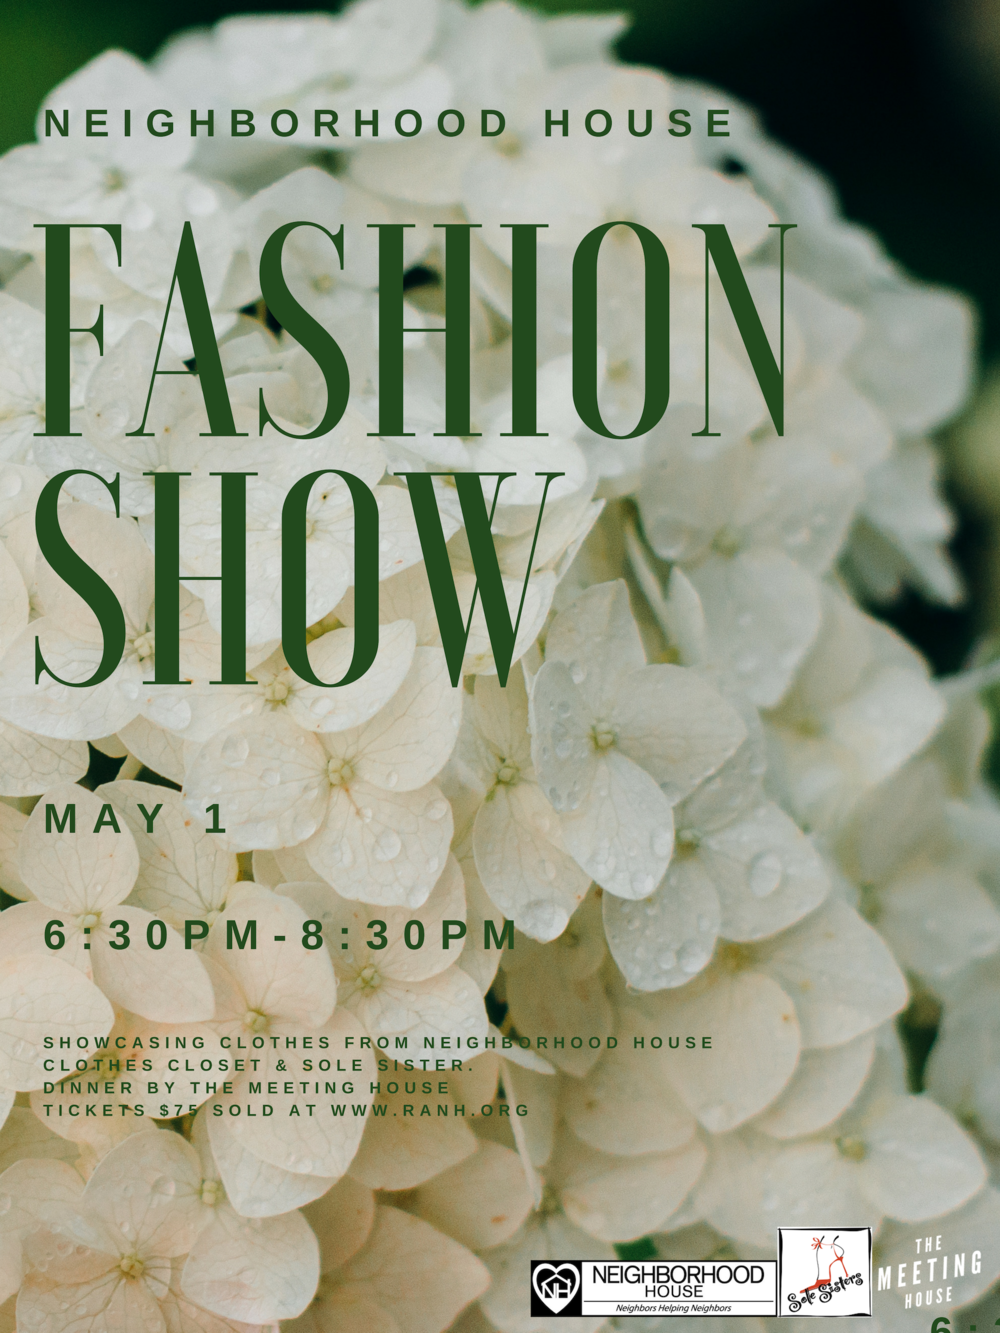 Mark your calendars for May 1st. The Neighborhood House will be hosting it's 2nd Fashion Show from 6:30-8:30 PM. Our models will be wearing clothing from our very own Neighborhood House Clothes Closet and from Sole Sisters. There will be beauty vendors, an open bar, and a delicious dinner provided by The Meeting House. Get your tickets now!  Tickets can be purchased at:  http://buytickets.at/neighborhoodhouse/240397   Sponsored by: Sole Sisters and The Meeting House